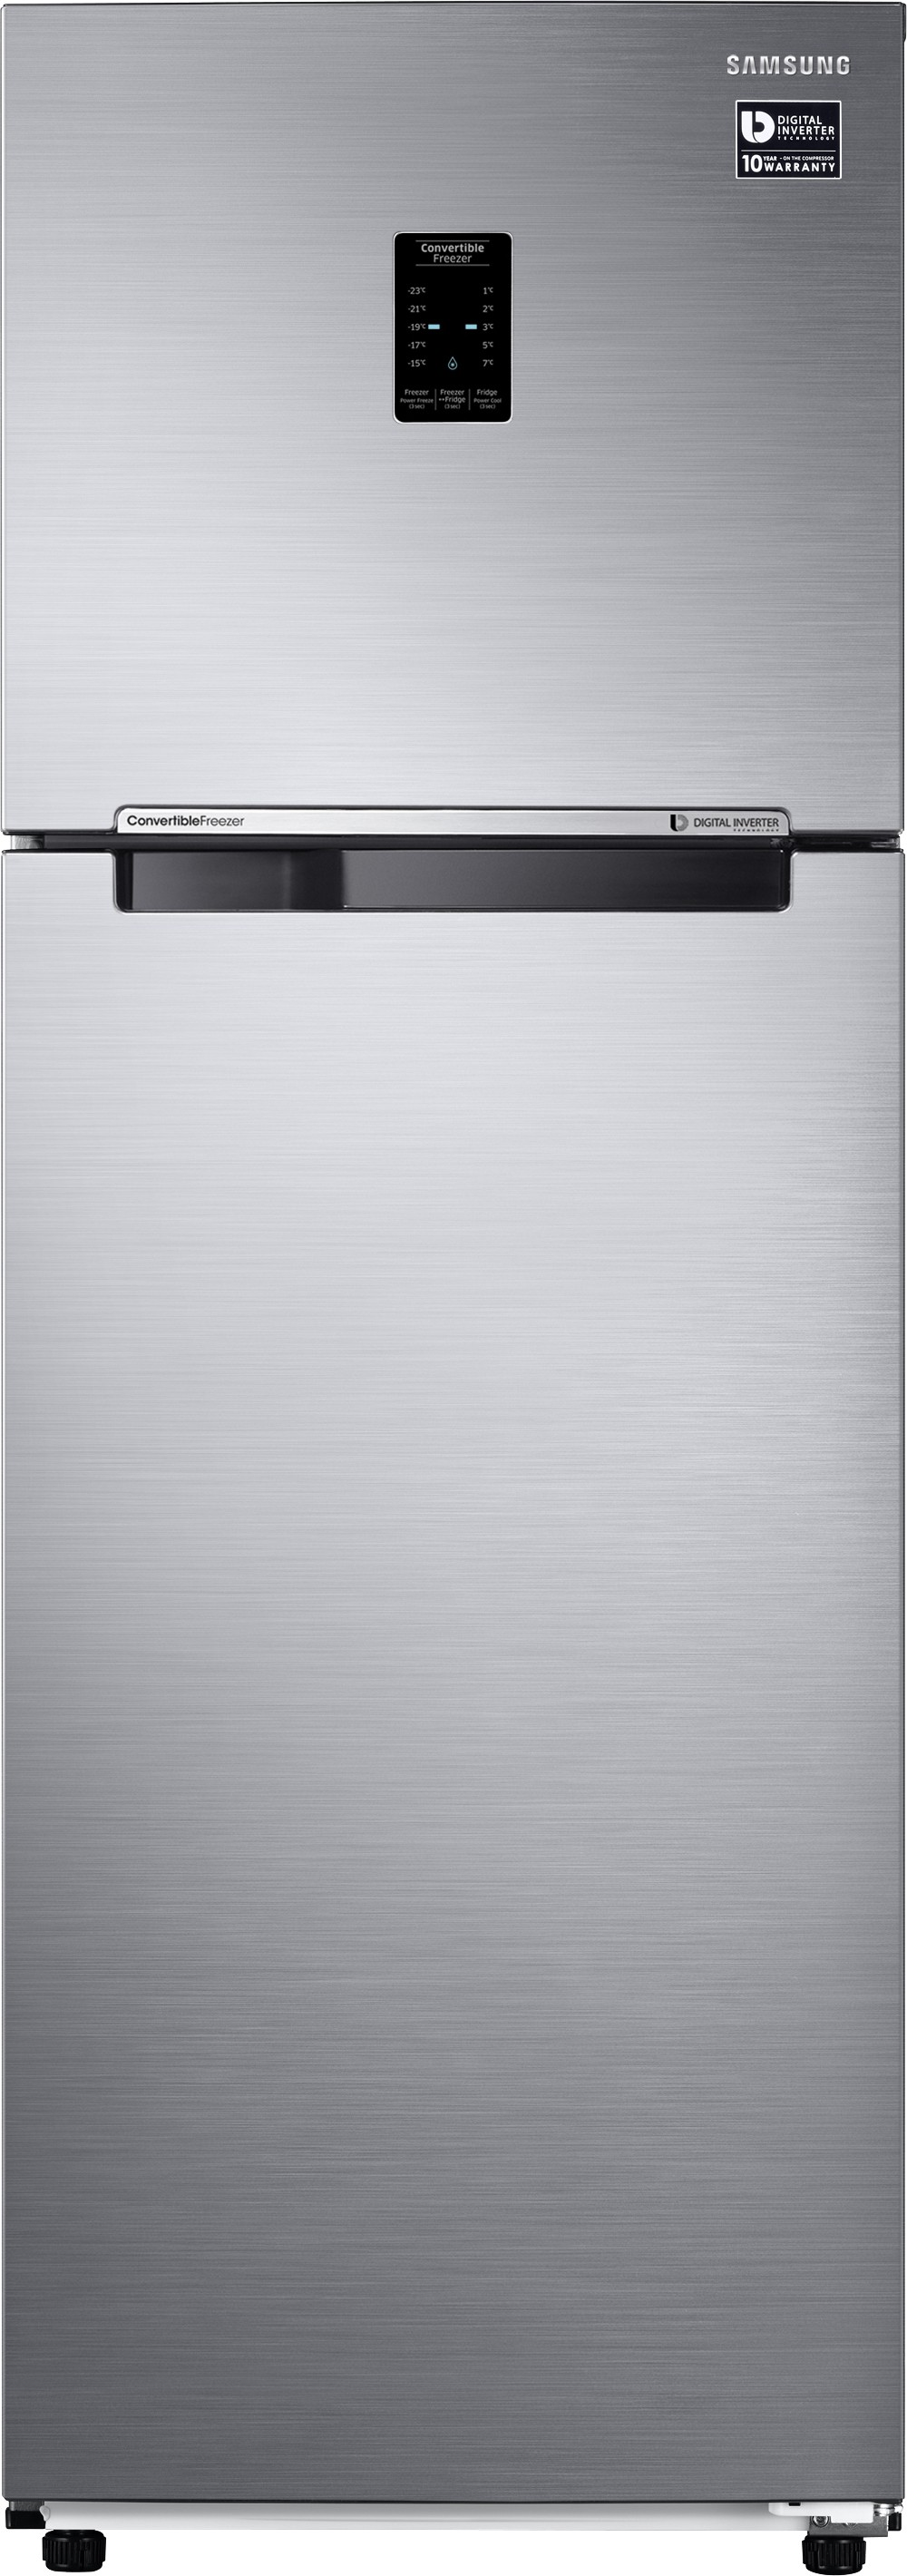 Deals - Chennai - 251 L and Above <br> Samsung Frost Free Refrigerators<br> Category - home_kitchen<br> Business - Flipkart.com